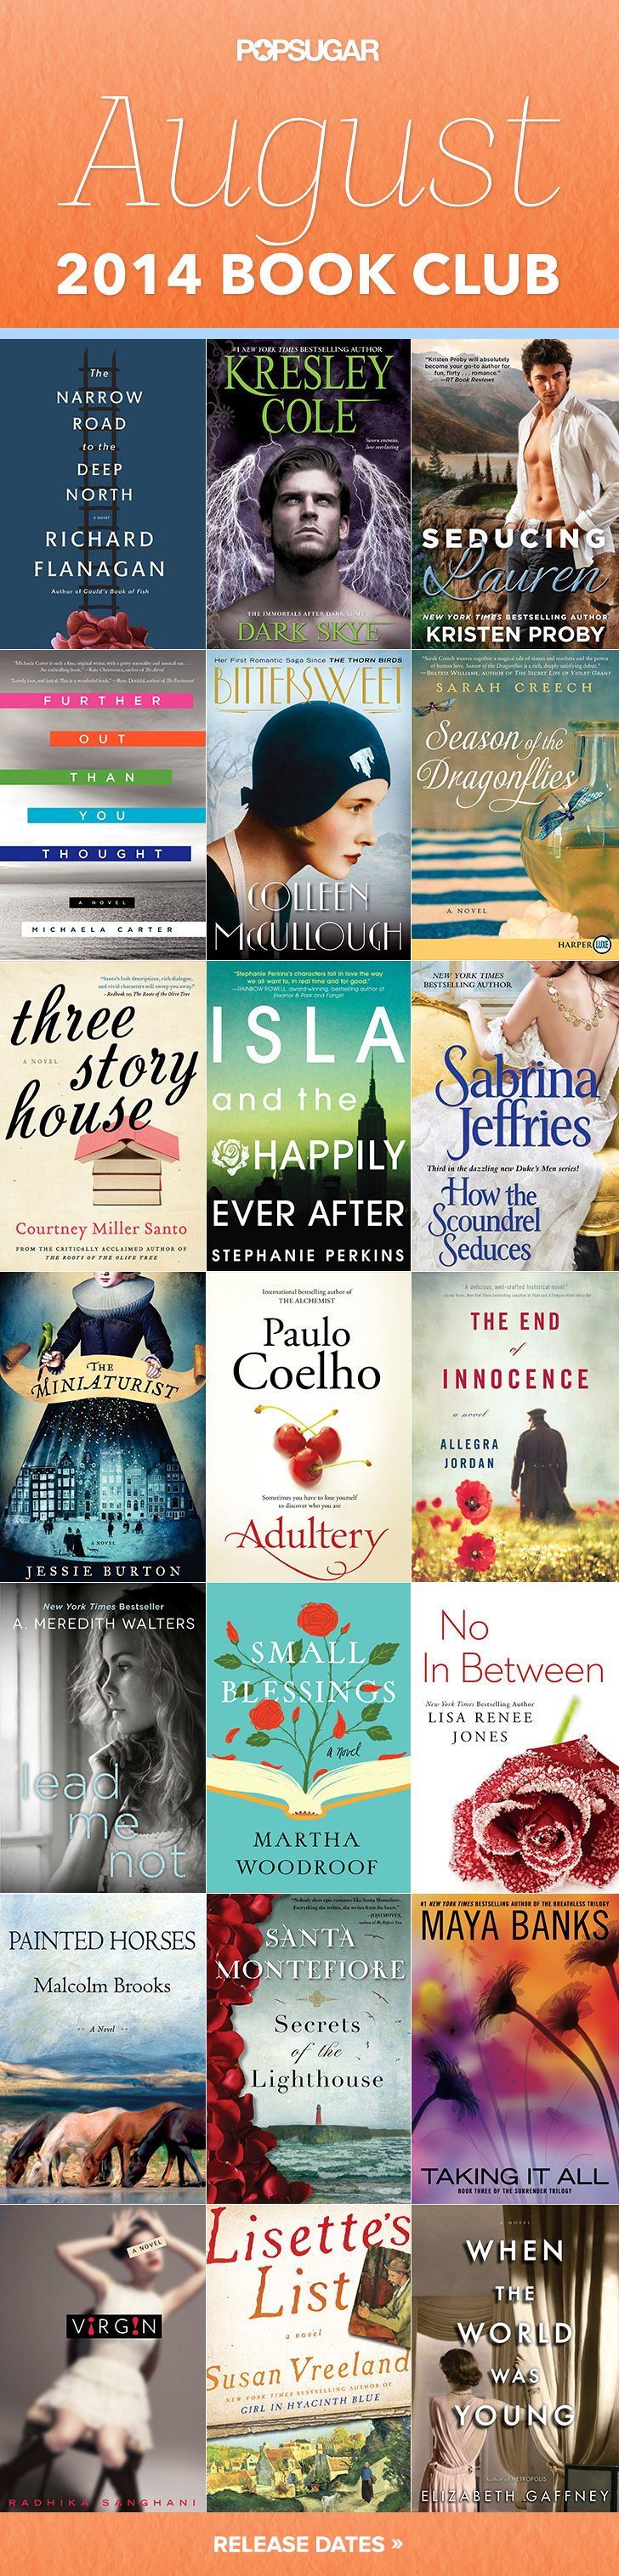 August 2014 book club: 21 new books out this month!